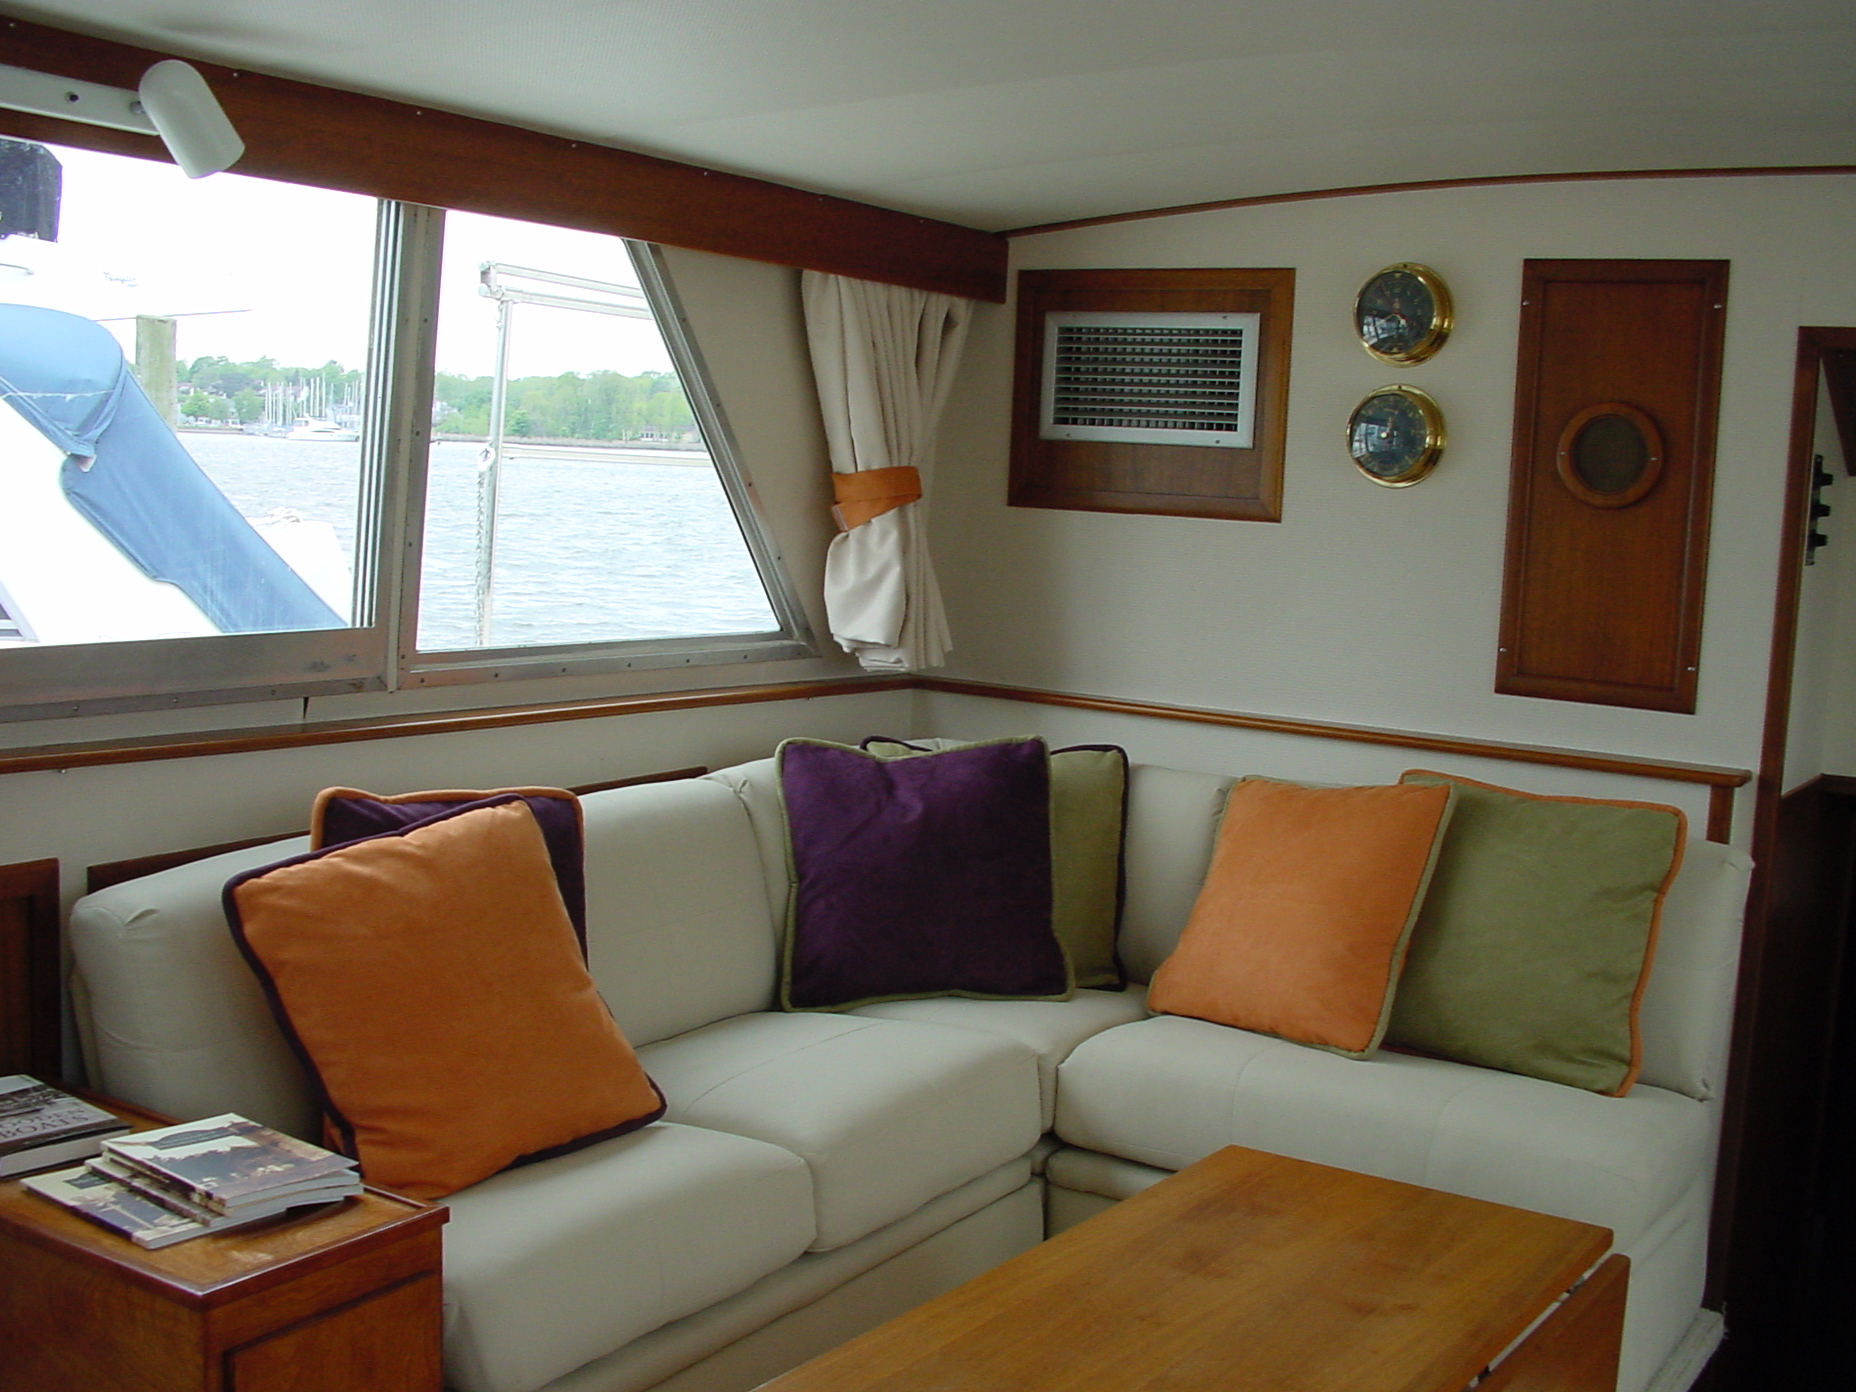 1000 images about boat makeover on pinterest camping chairs cas and trucks for How to restore a boat interior